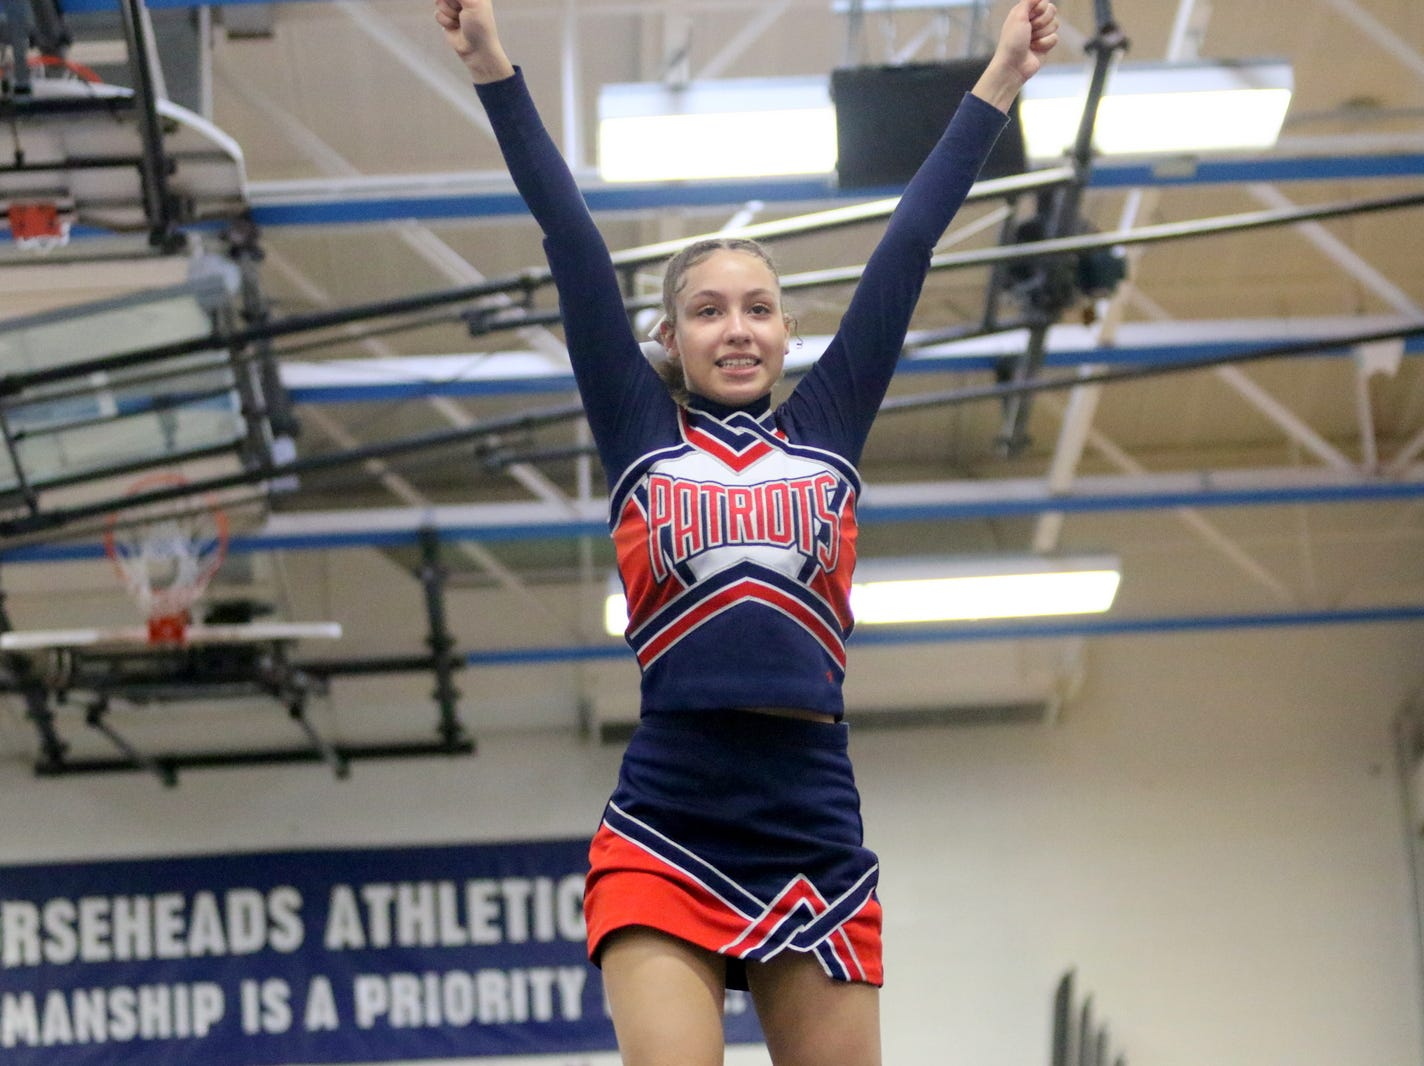 Binghamton junior varsity cheerleaders compete at the STAC Winter Cheer Championships on Feb. 16, 2019 at Horseheads Middle School.